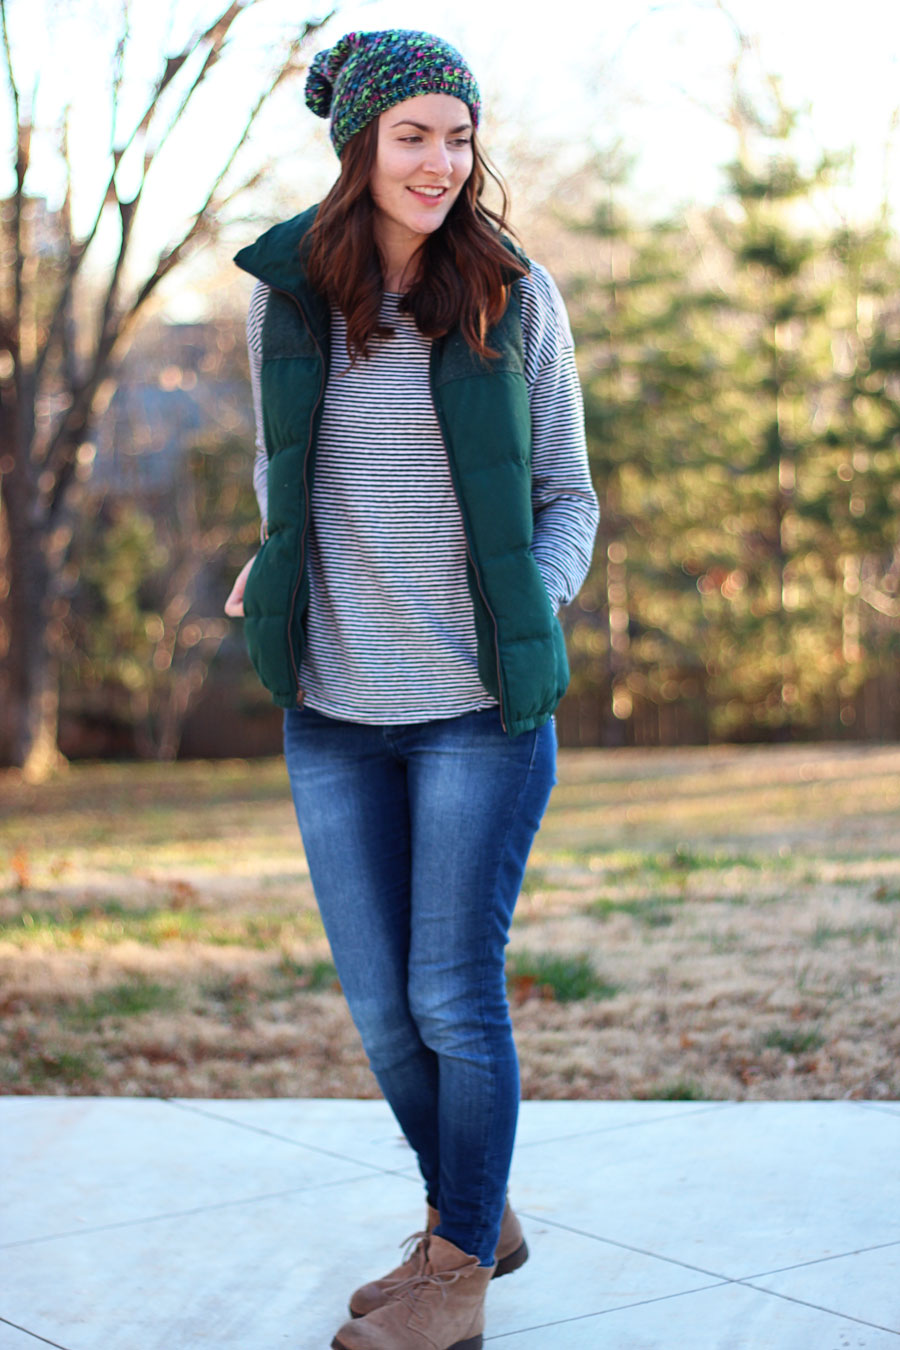 Style: Errand Running Mom Outfit